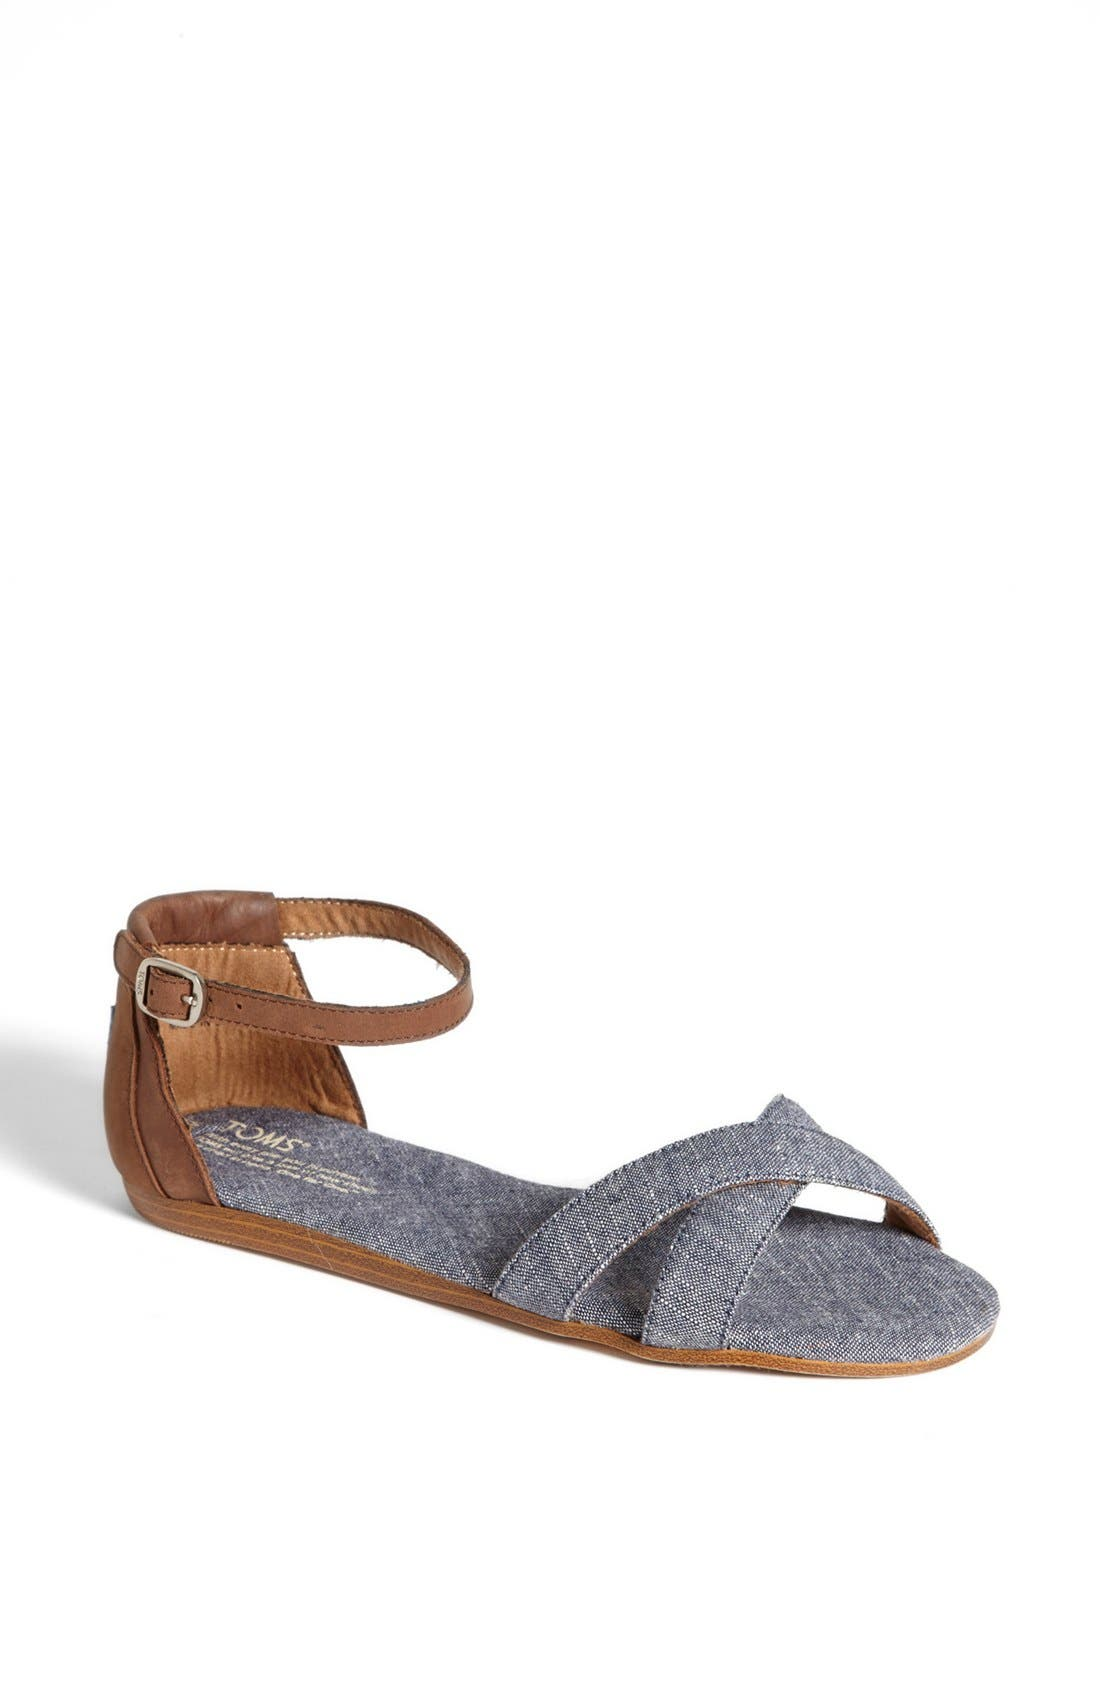 Alternate Image 1 Selected - TOMS 'Correa' Ankle Strap Flat Sandal